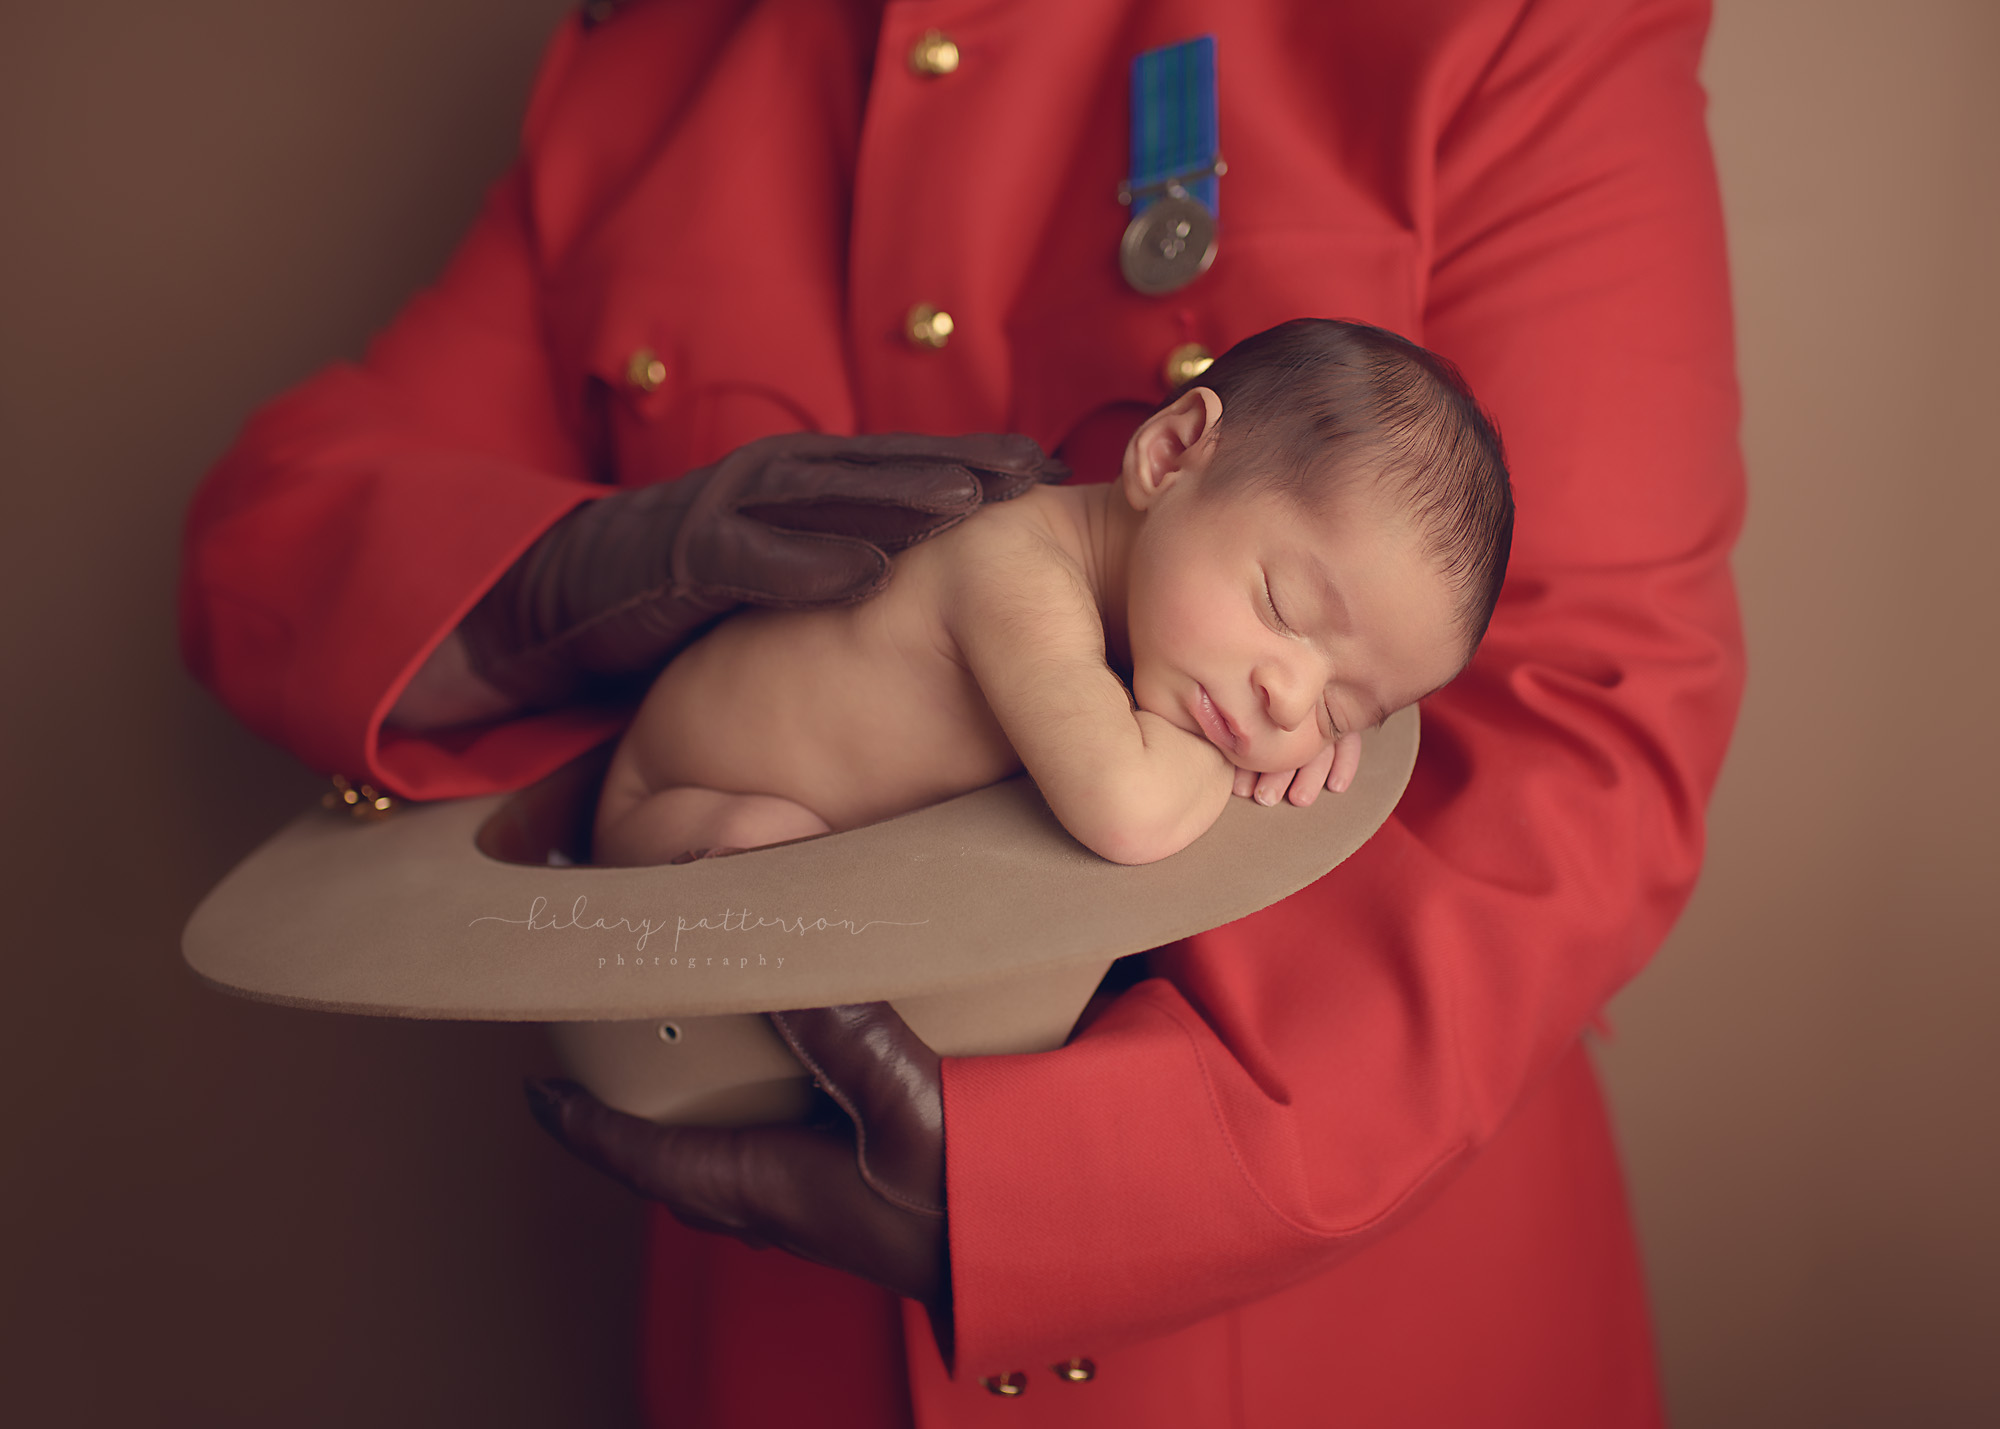 newborn-boy-photographer-fraser-valley-vancouver-hope-chilliwack-red-serge-police-pose-prop-kamloops